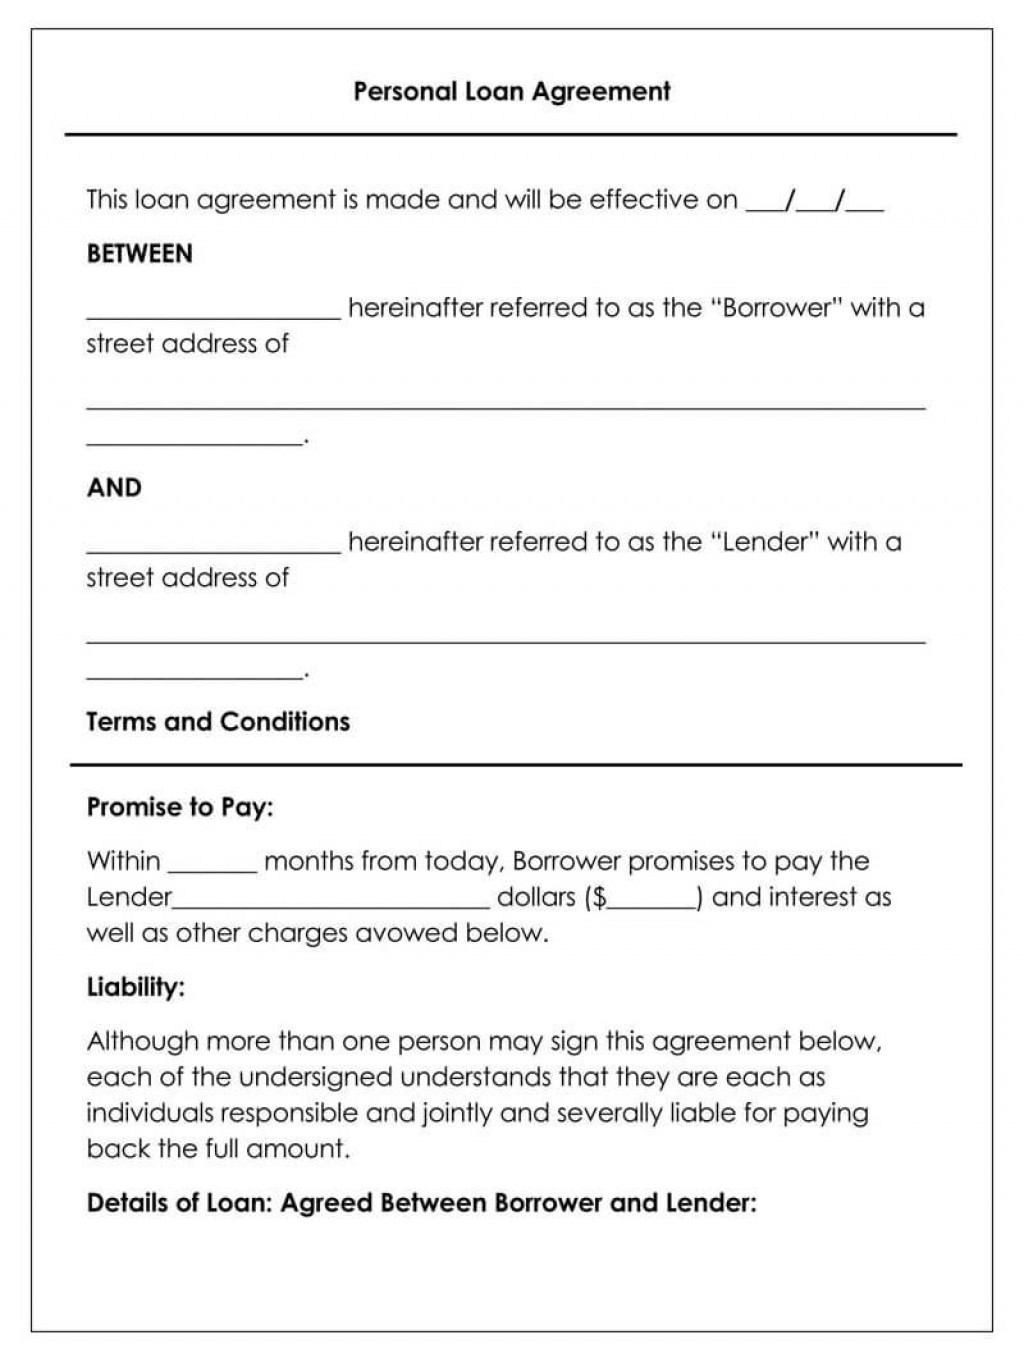 008 Fearsome Loan Agreement Template Free Image  Wording Family Uk Personal AustraliaLarge